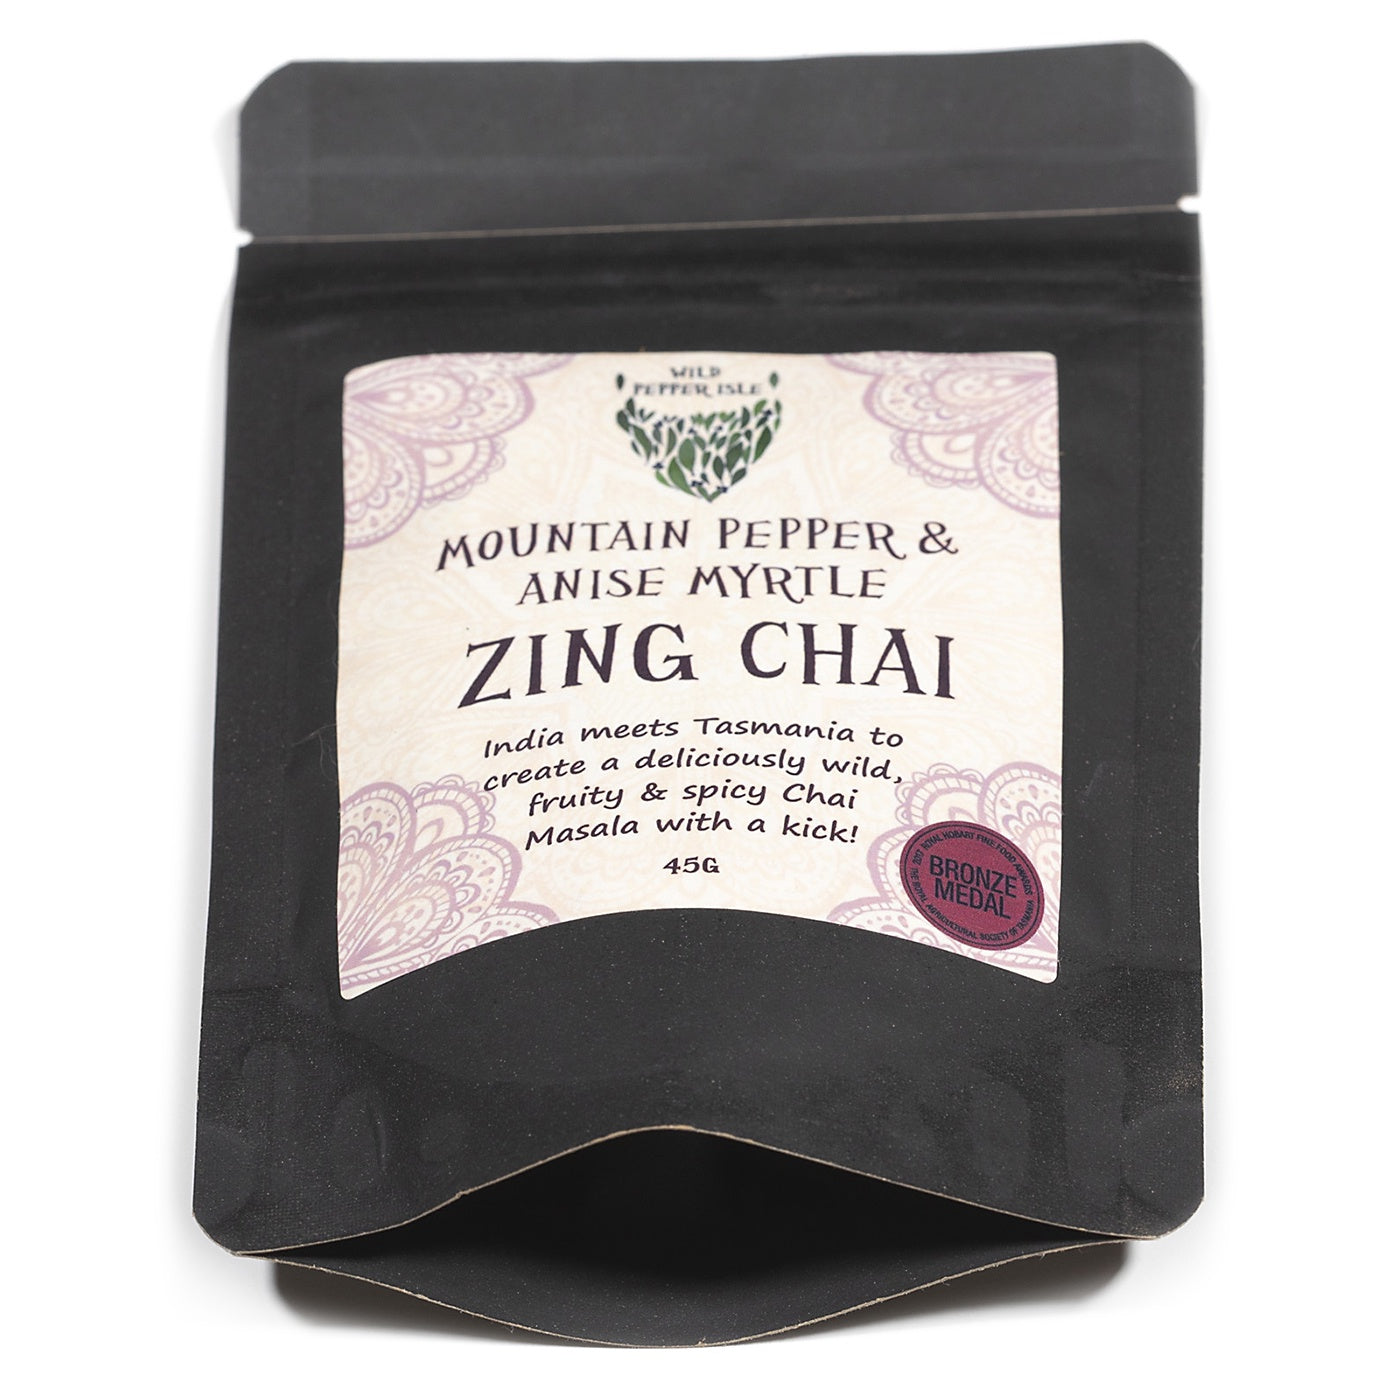 Wild Pepper Isle - Tea - Zing Chai